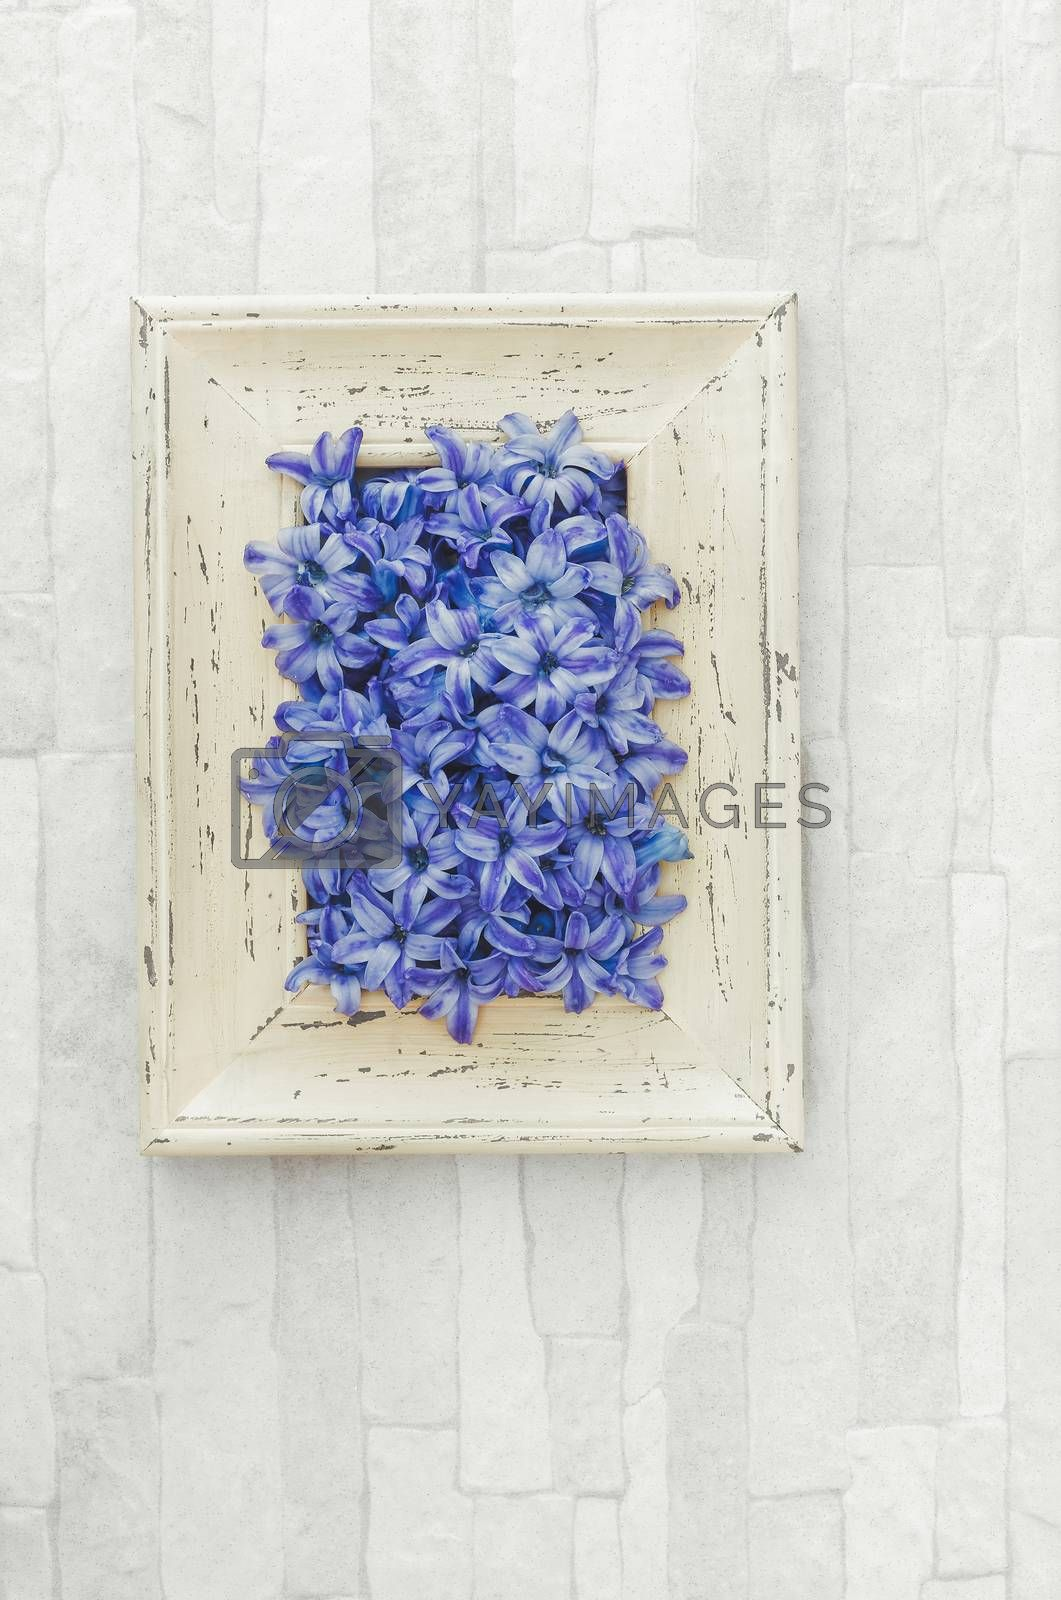 Spring Hyacinths petals in a rustic frame. Overhead view with retro style processing, blank space